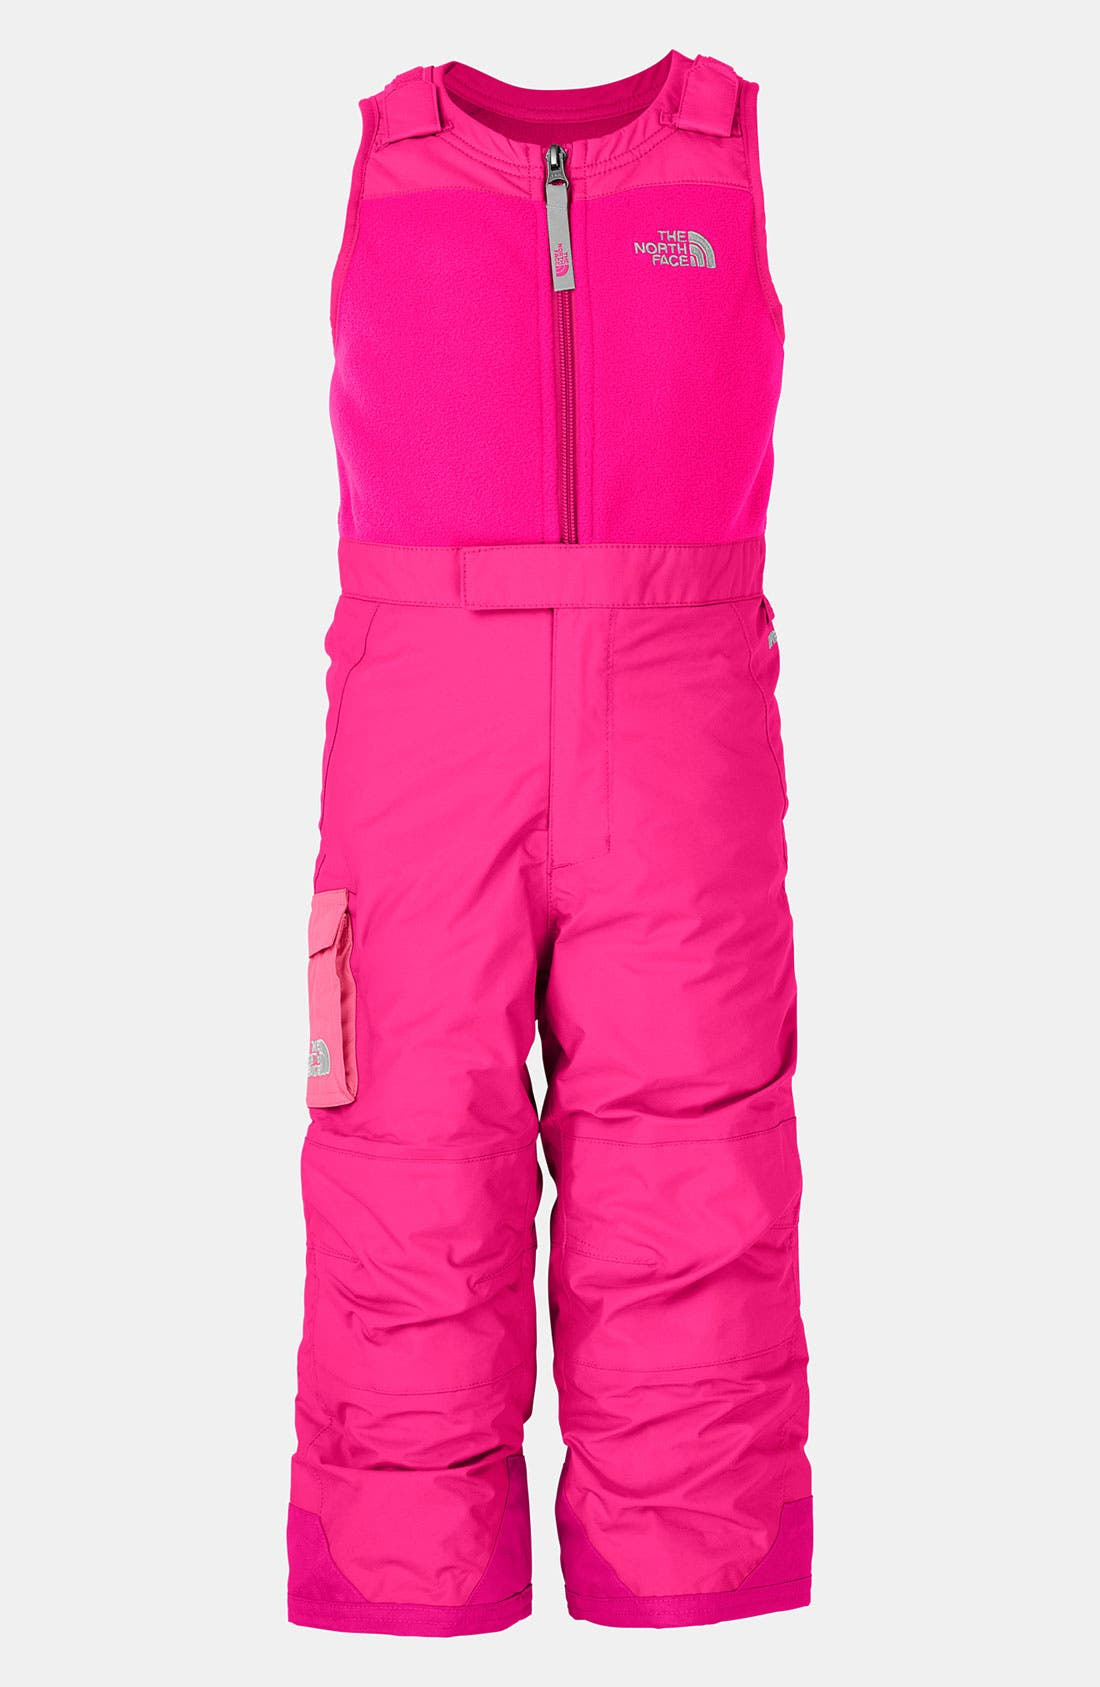 Alternate Image 1 Selected - The North Face 'Snowdrift' Insulated Bib Overalls (Toddler)